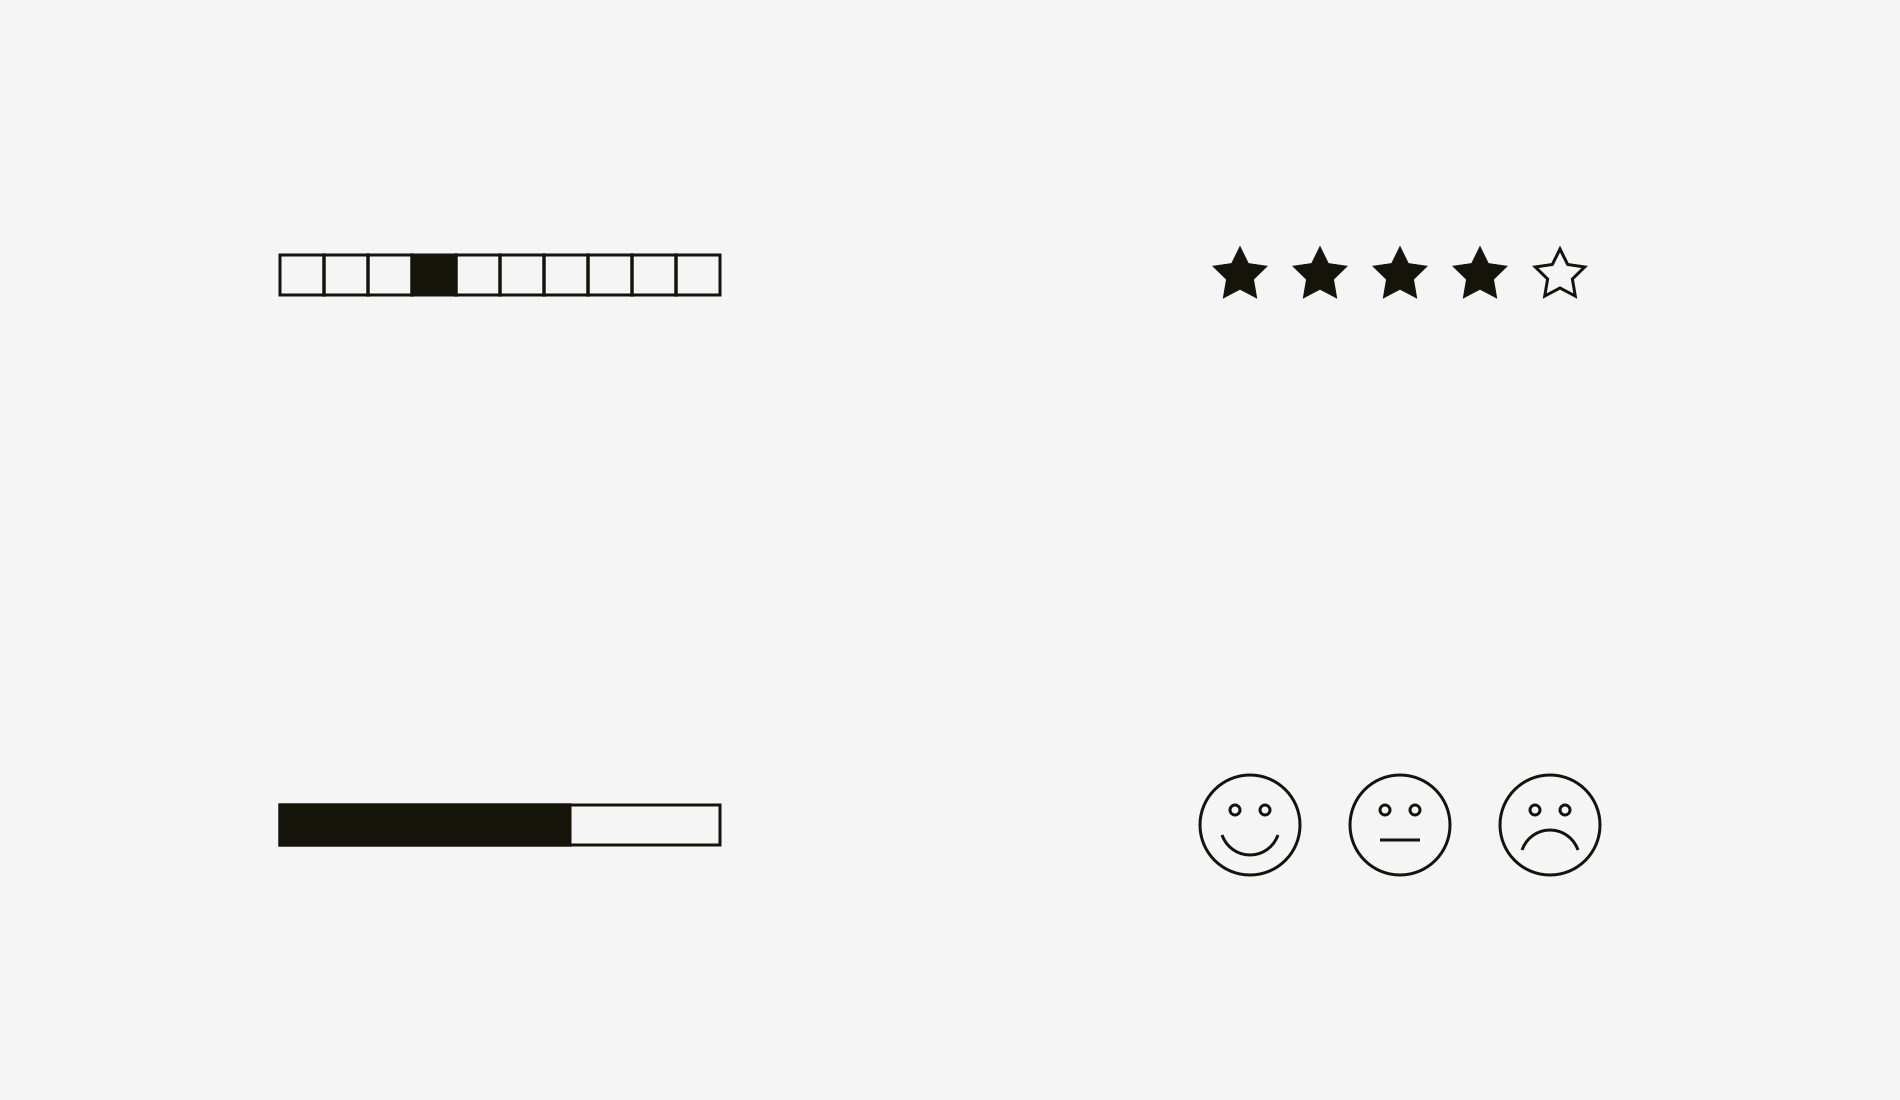 Designing Better Design Documentation Muzli Inspiration Star Diagrams Are Useful For Basic Brainstorming About A Topic Or Bar Charts Ratings 10 Point Scales Smileys The Most Compact And Well Recognizable Ways To Show Relative Non Numeric Information